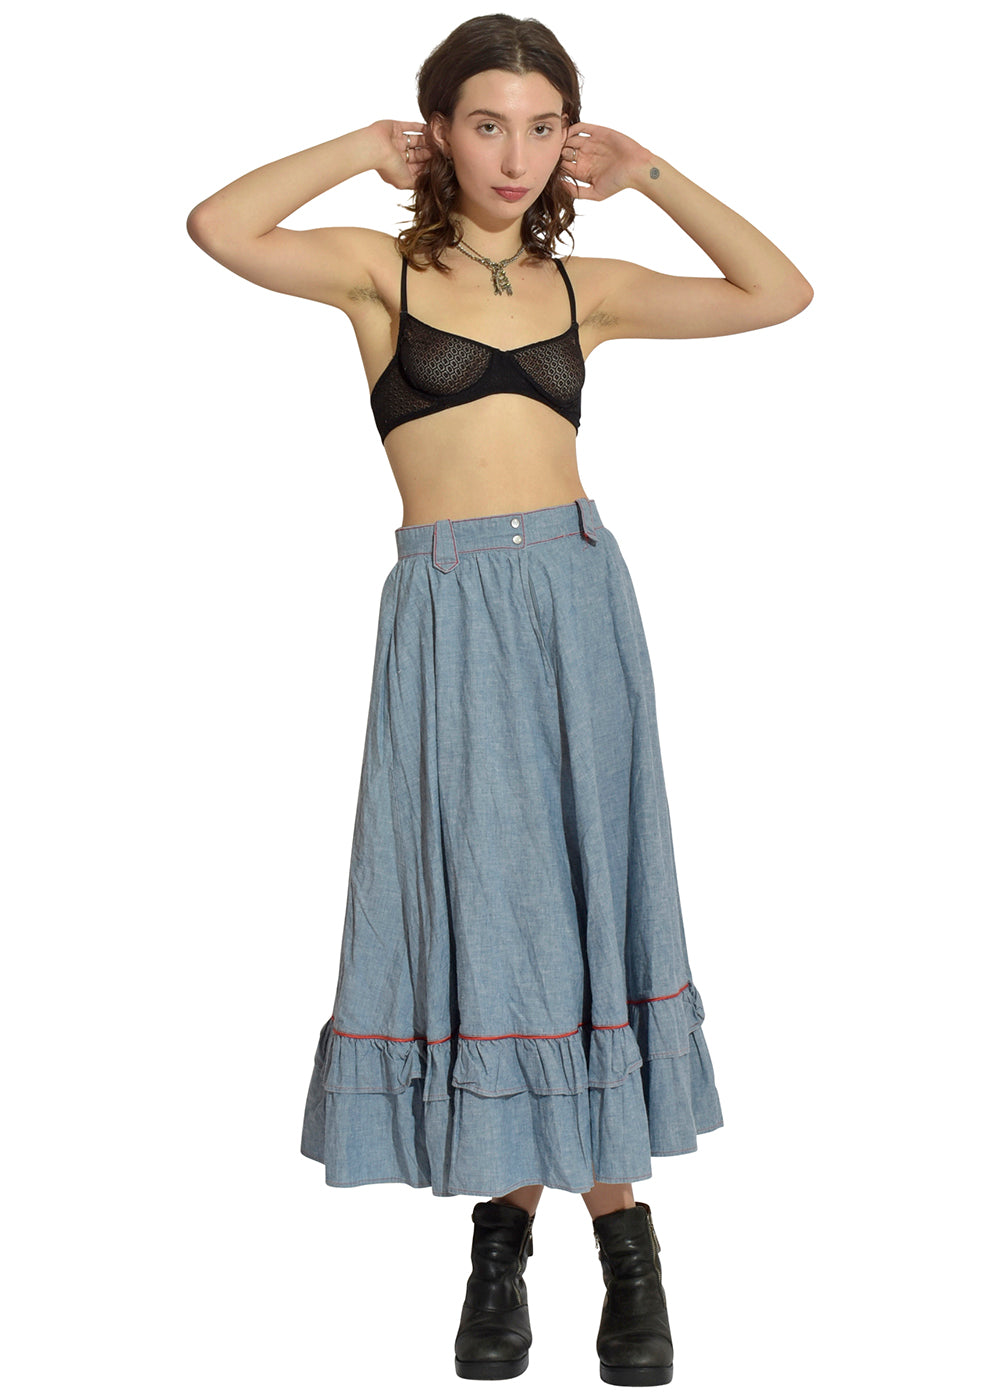 Light Jean Prairie Skirt with Red Stitching